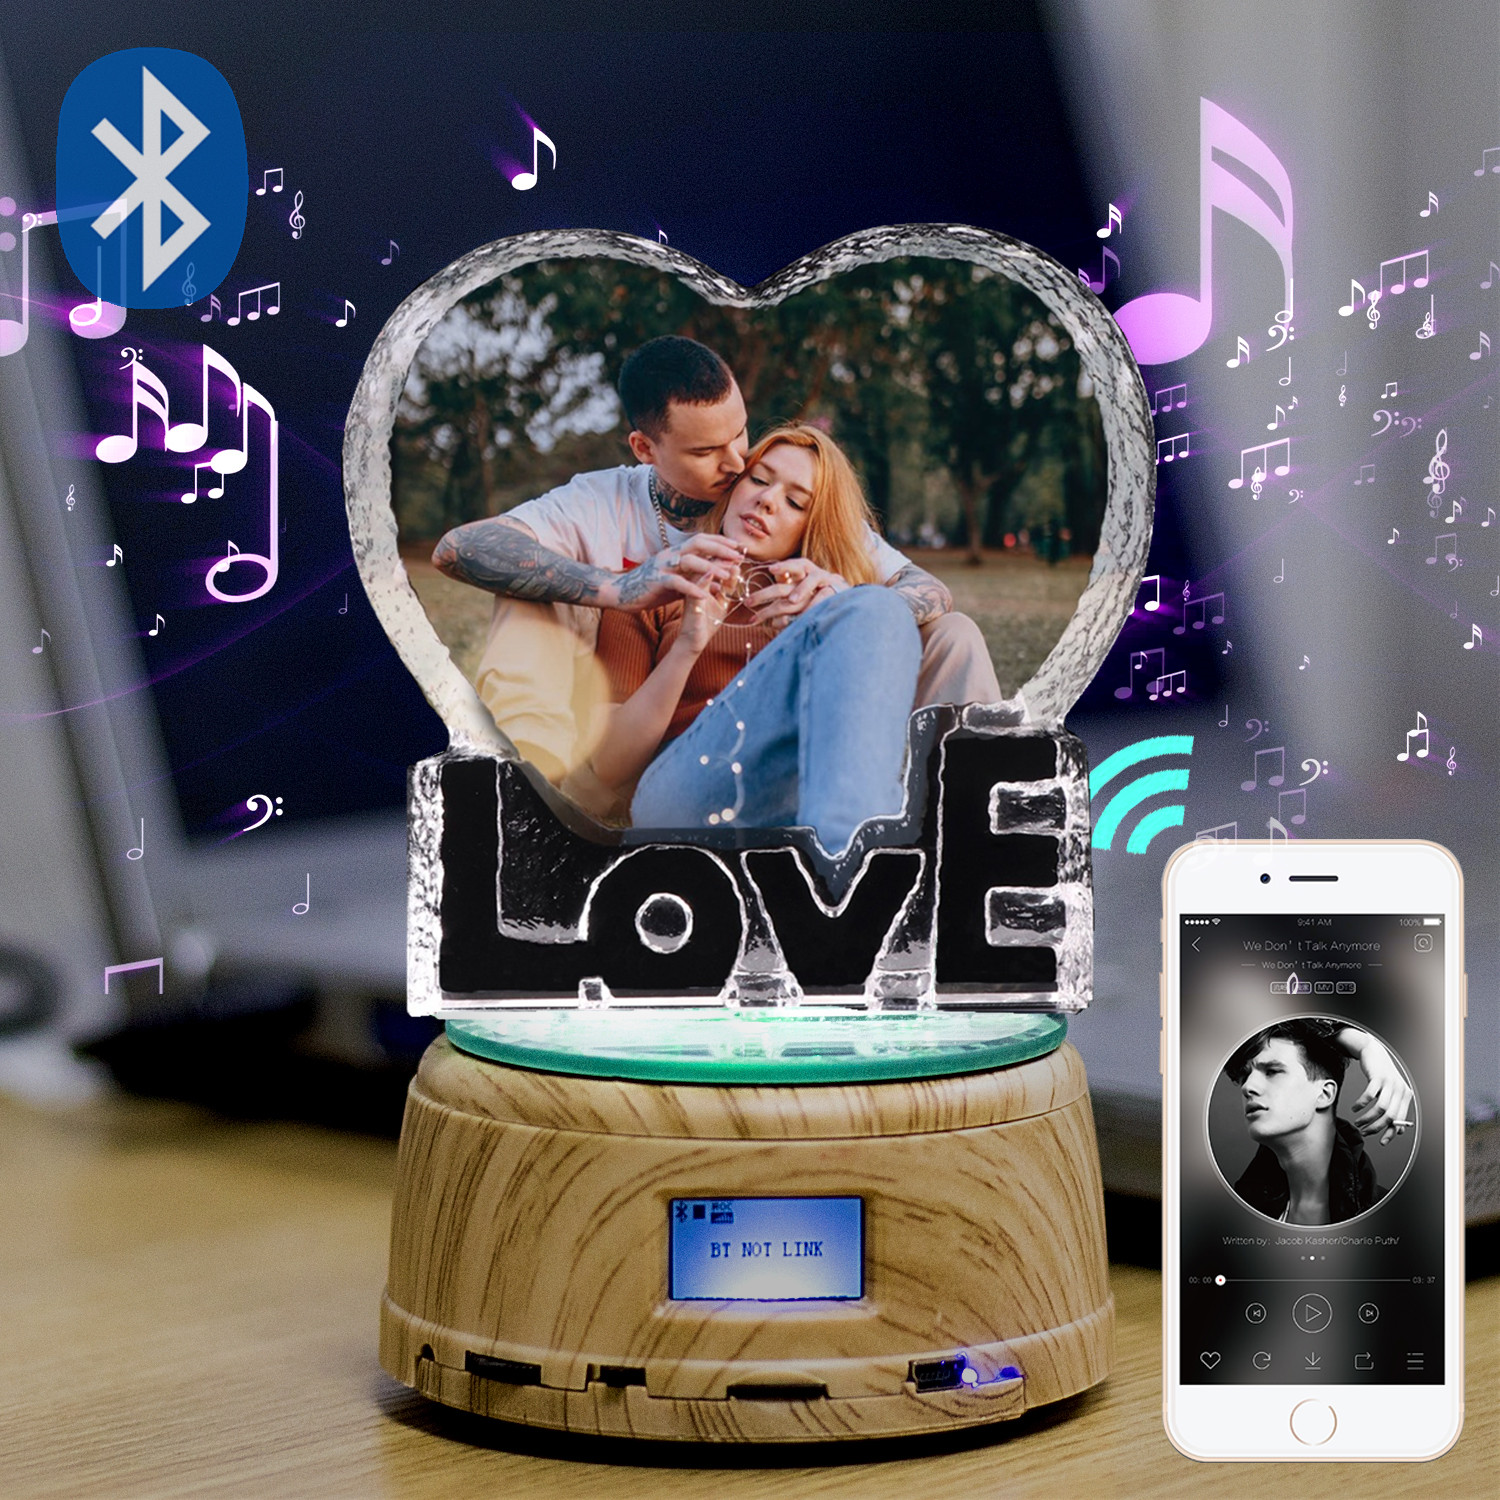 Custom K9 Love Crystal Photo Frame Album MP4 Bluetooth Music Box Color Photo Rotary Jewelry Show Turntable Souvenir Gift